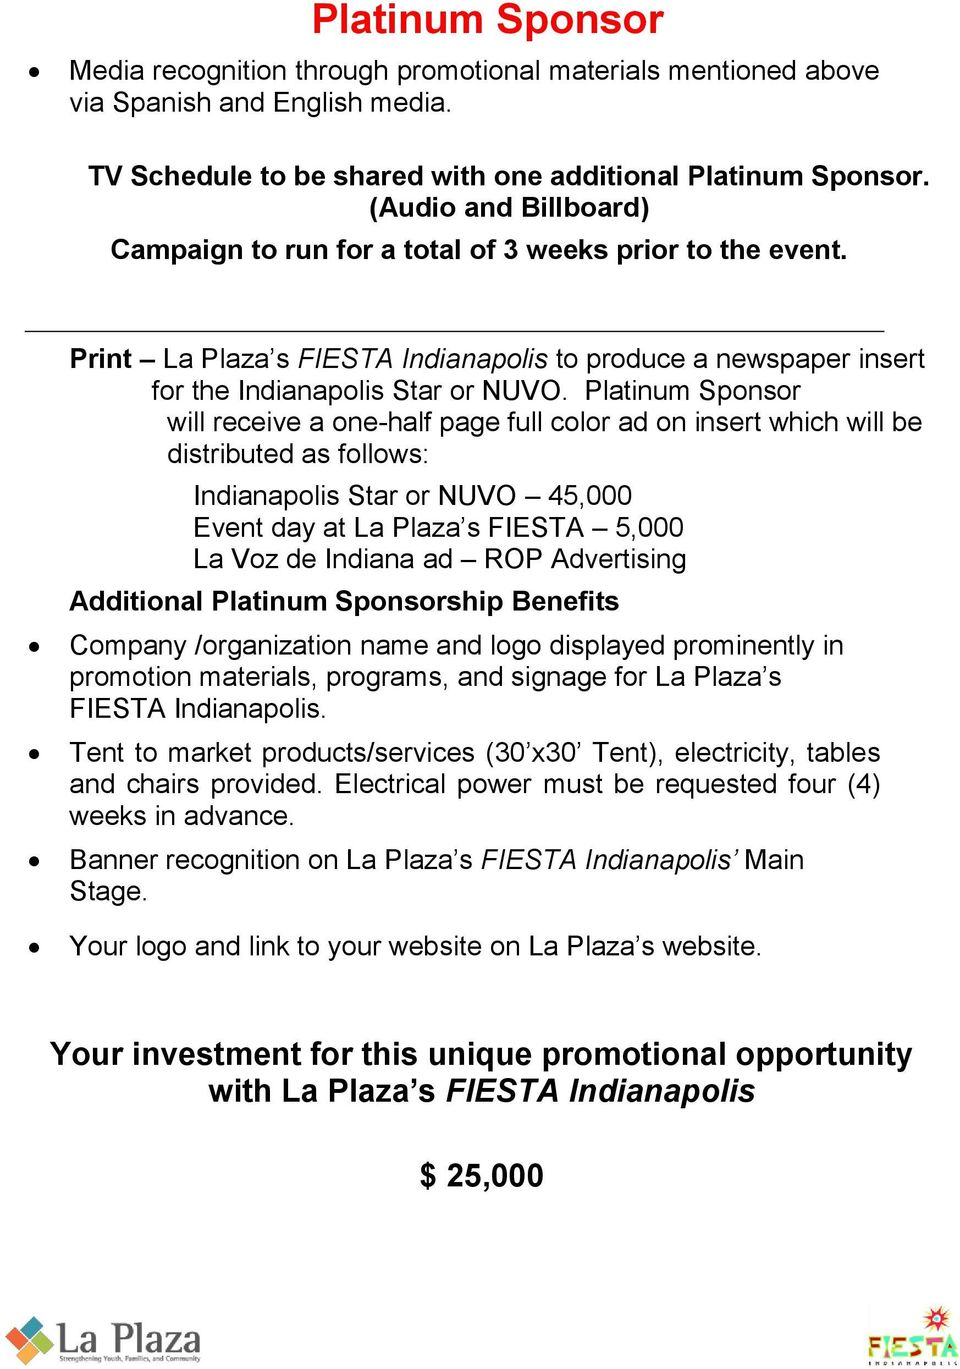 Platinum Sponsor will receive a one-half page full color ad on insert which will be distributed as follows: Indianapolis Star or NUVO 45,000 Event day at La Plaza s FIESTA 5,000 La Voz de Indiana ad